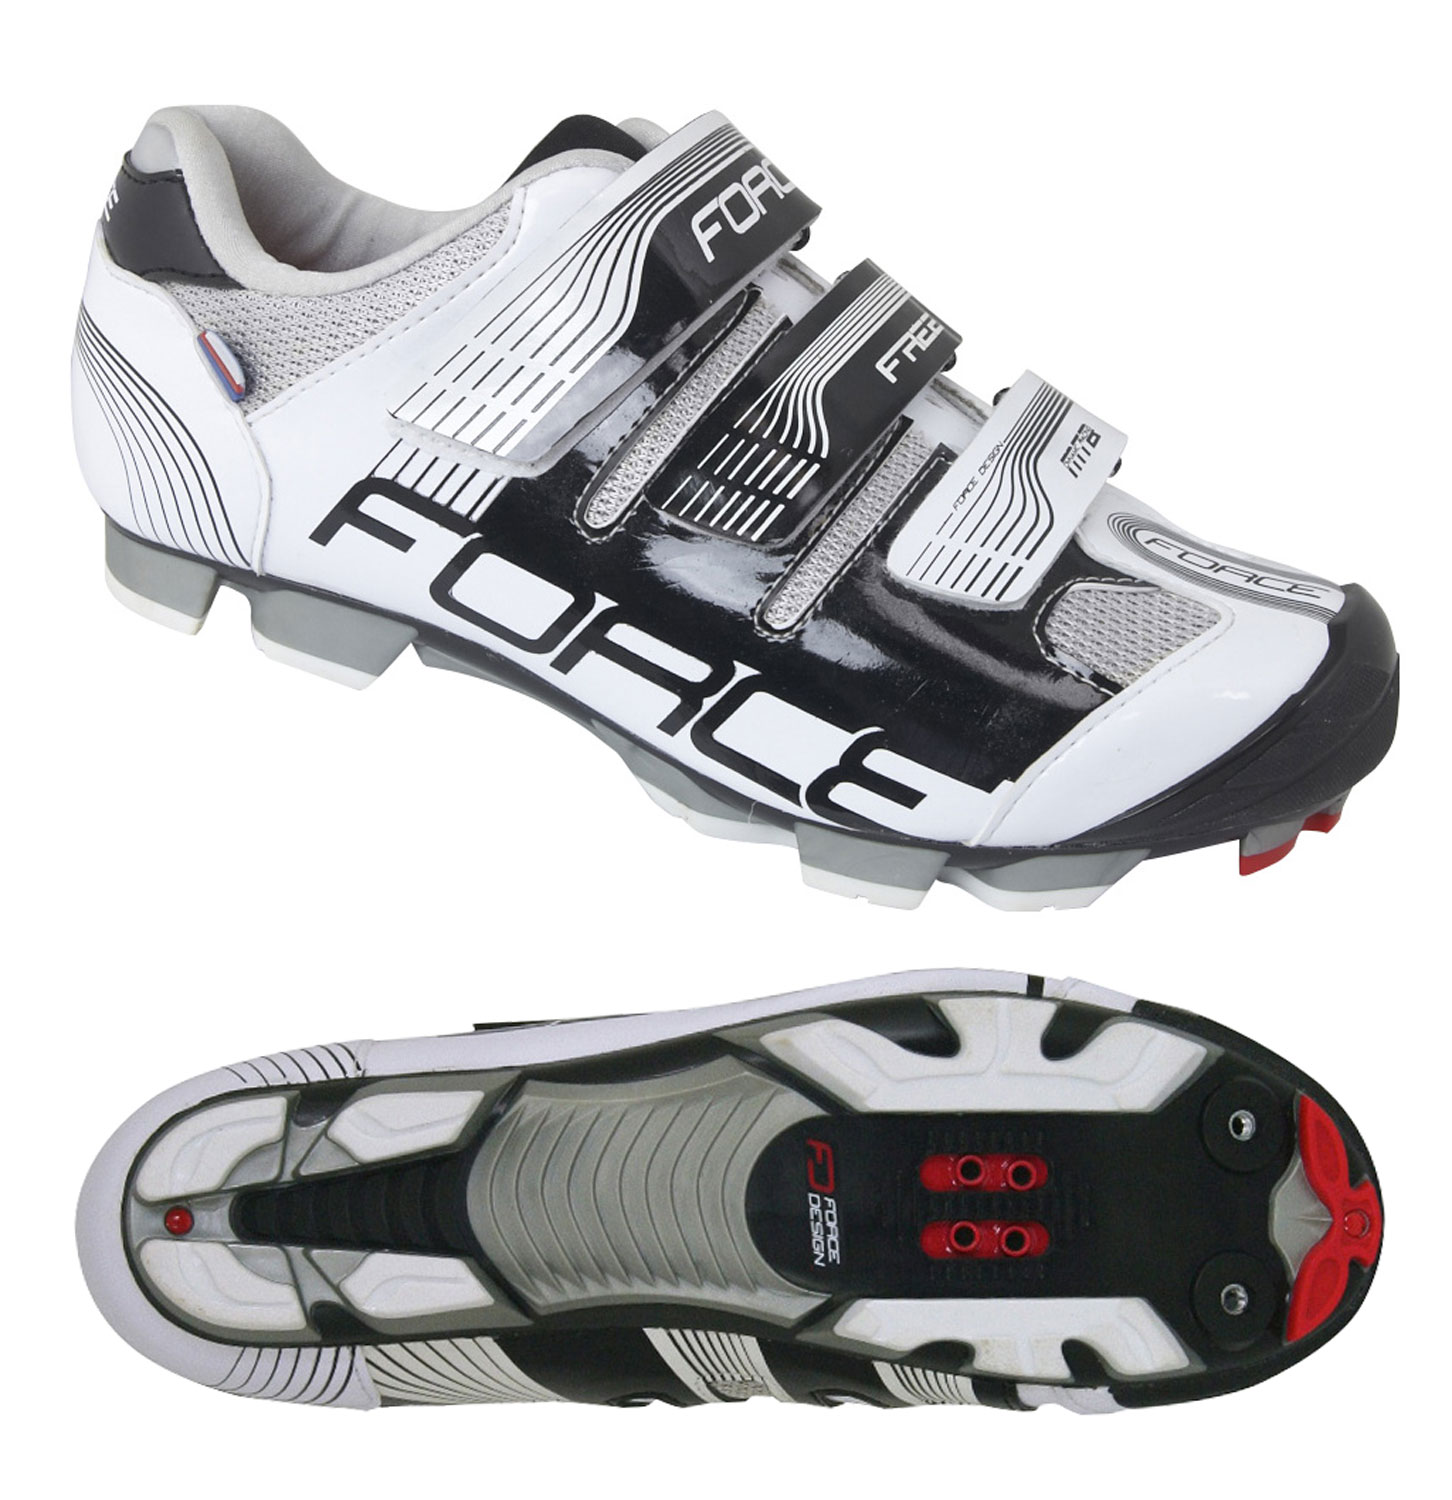 outlet store ff7db 36647 Scarpa Force mtb